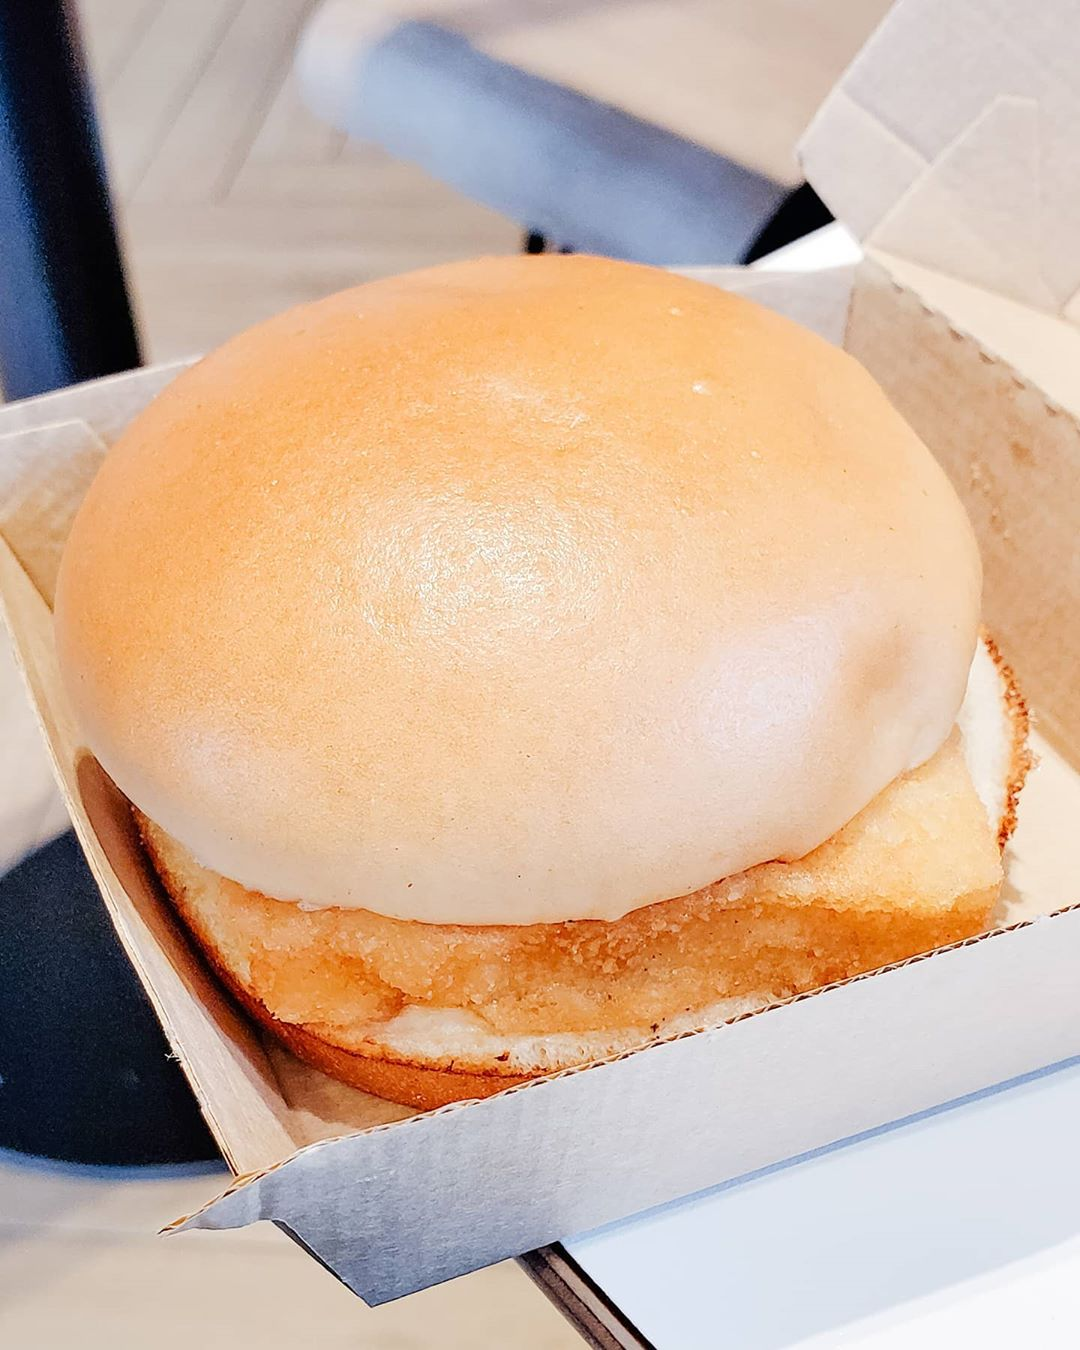 Alternatives to the smooth, fluffy Filet-O-Fish buns can be found at Giant and other supermarkets as a fast food dupe that can save you money.